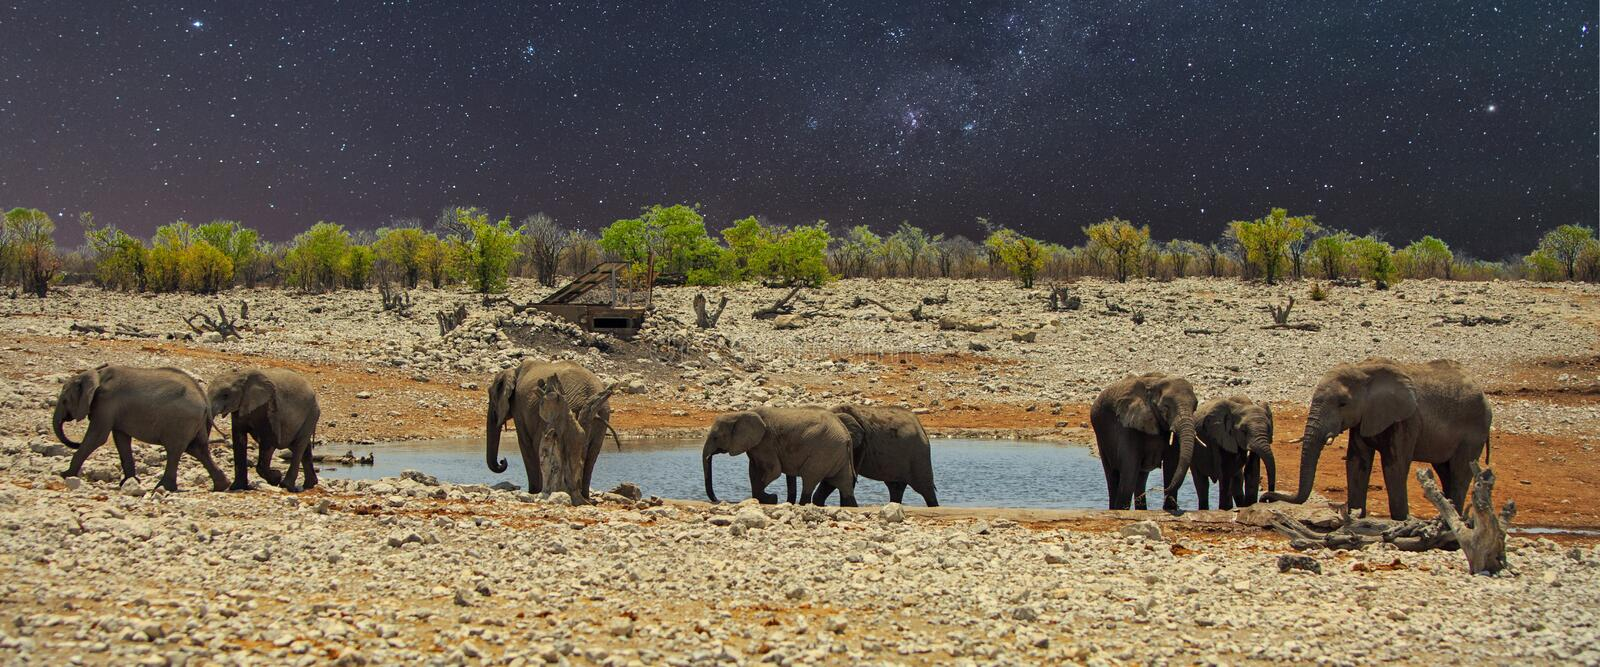 Star studded night with elephants at a waterhole, in Etosha royalty free stock images